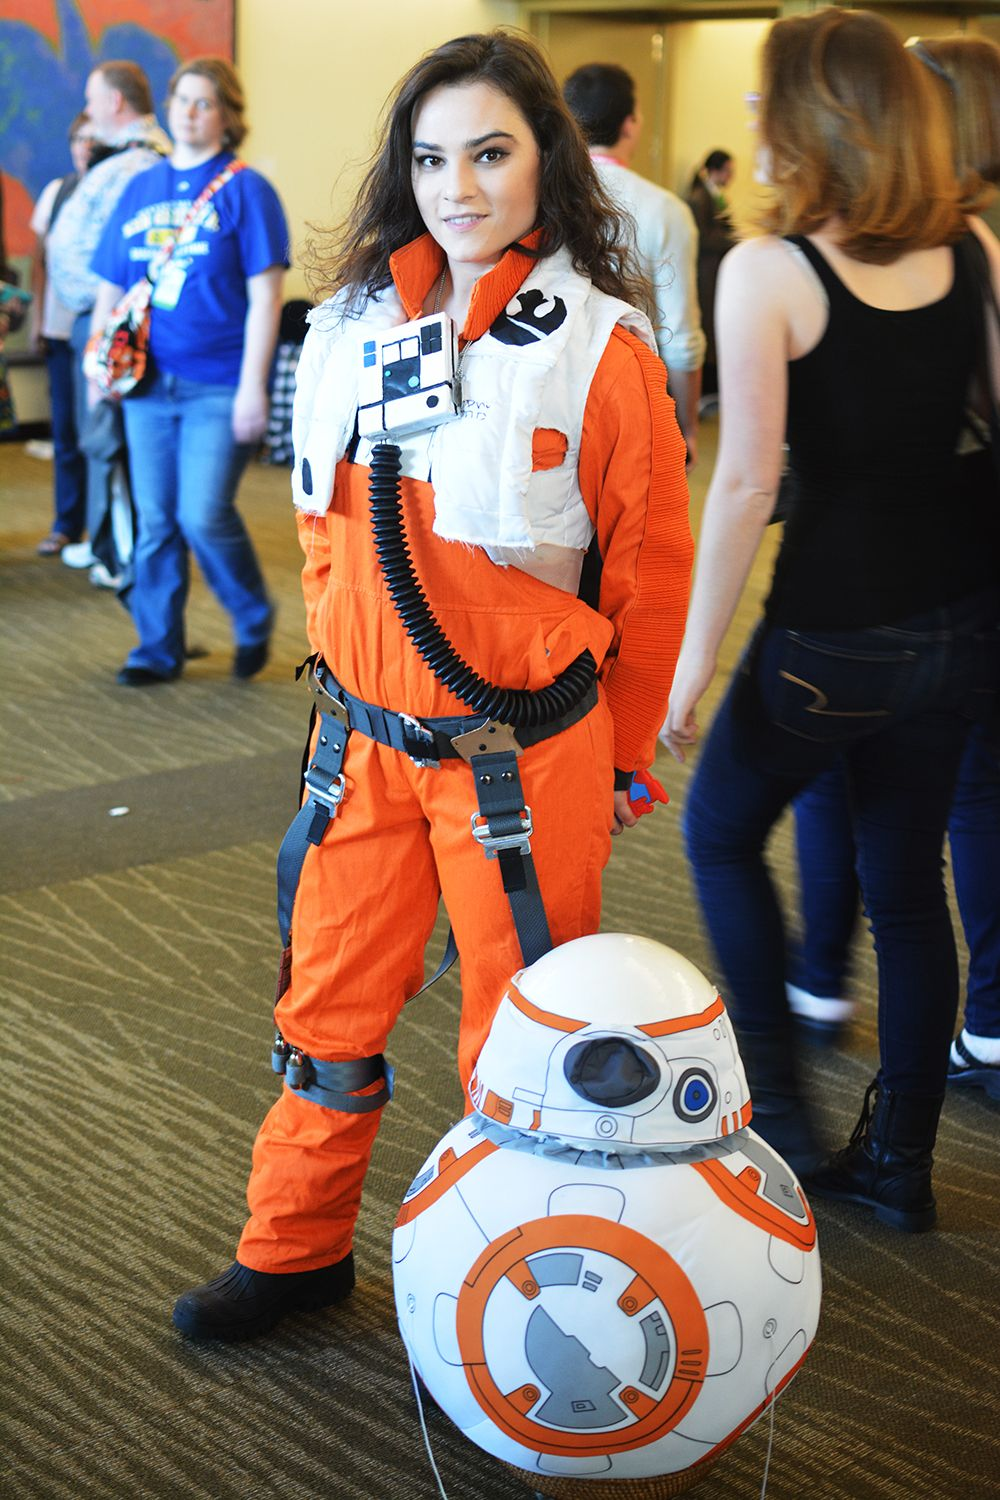 Bien connu Rule 63 Poe Dameron Star Wars Genderbent Cosplay | Star Wars  KS35